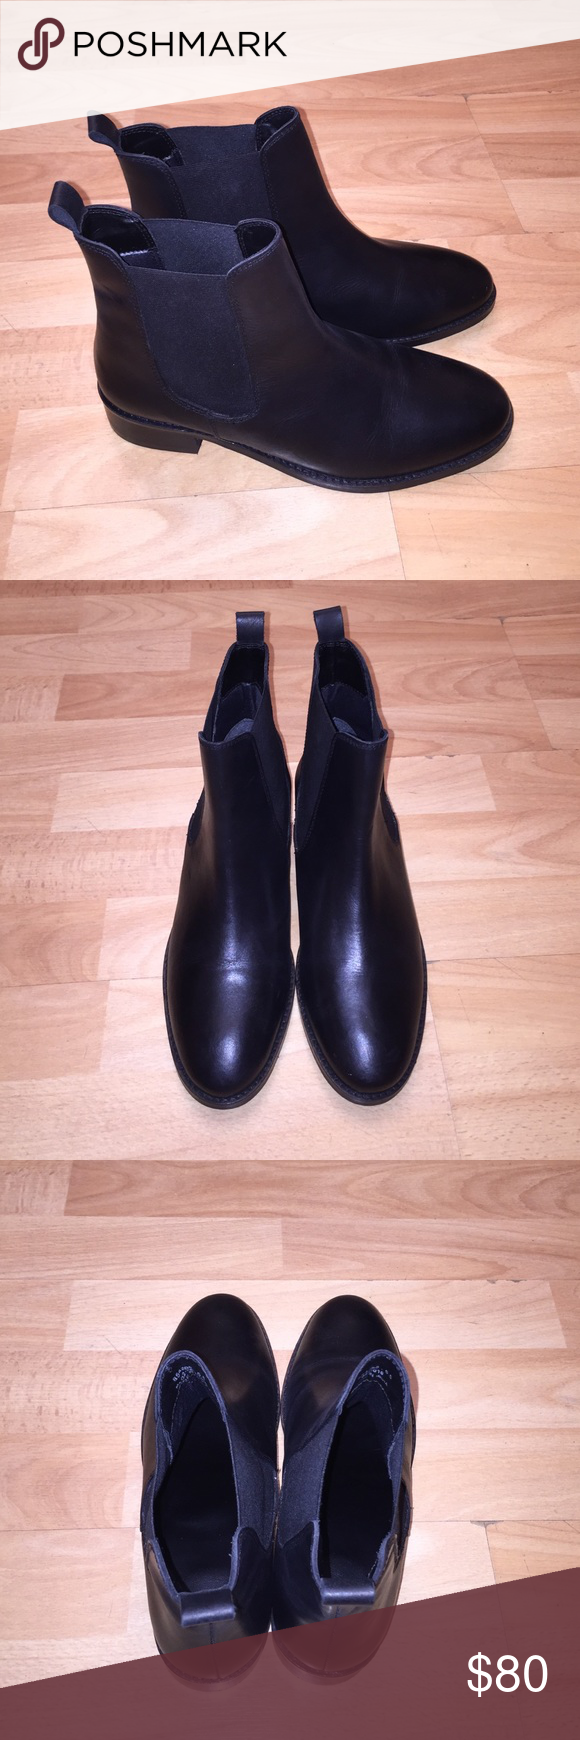 asos black leather chelsea boots black leather chelsea boots